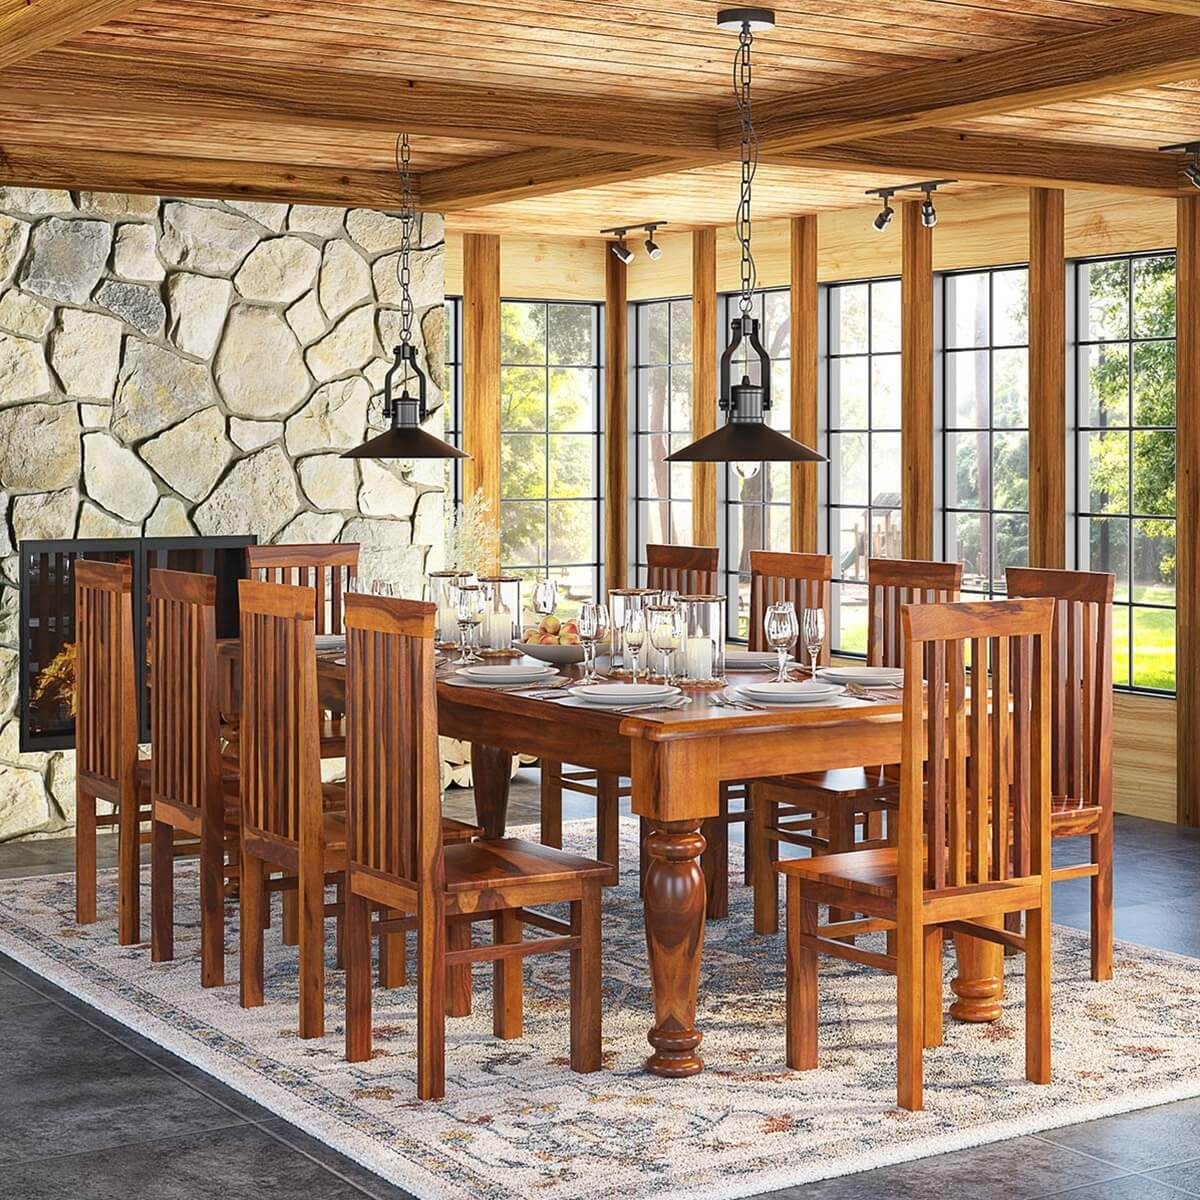 Rustic Furniture Solid Wood Large Dining Room Table  : 4127 from www.sierralivingconcepts.com size 800 x 800 jpeg 194kB